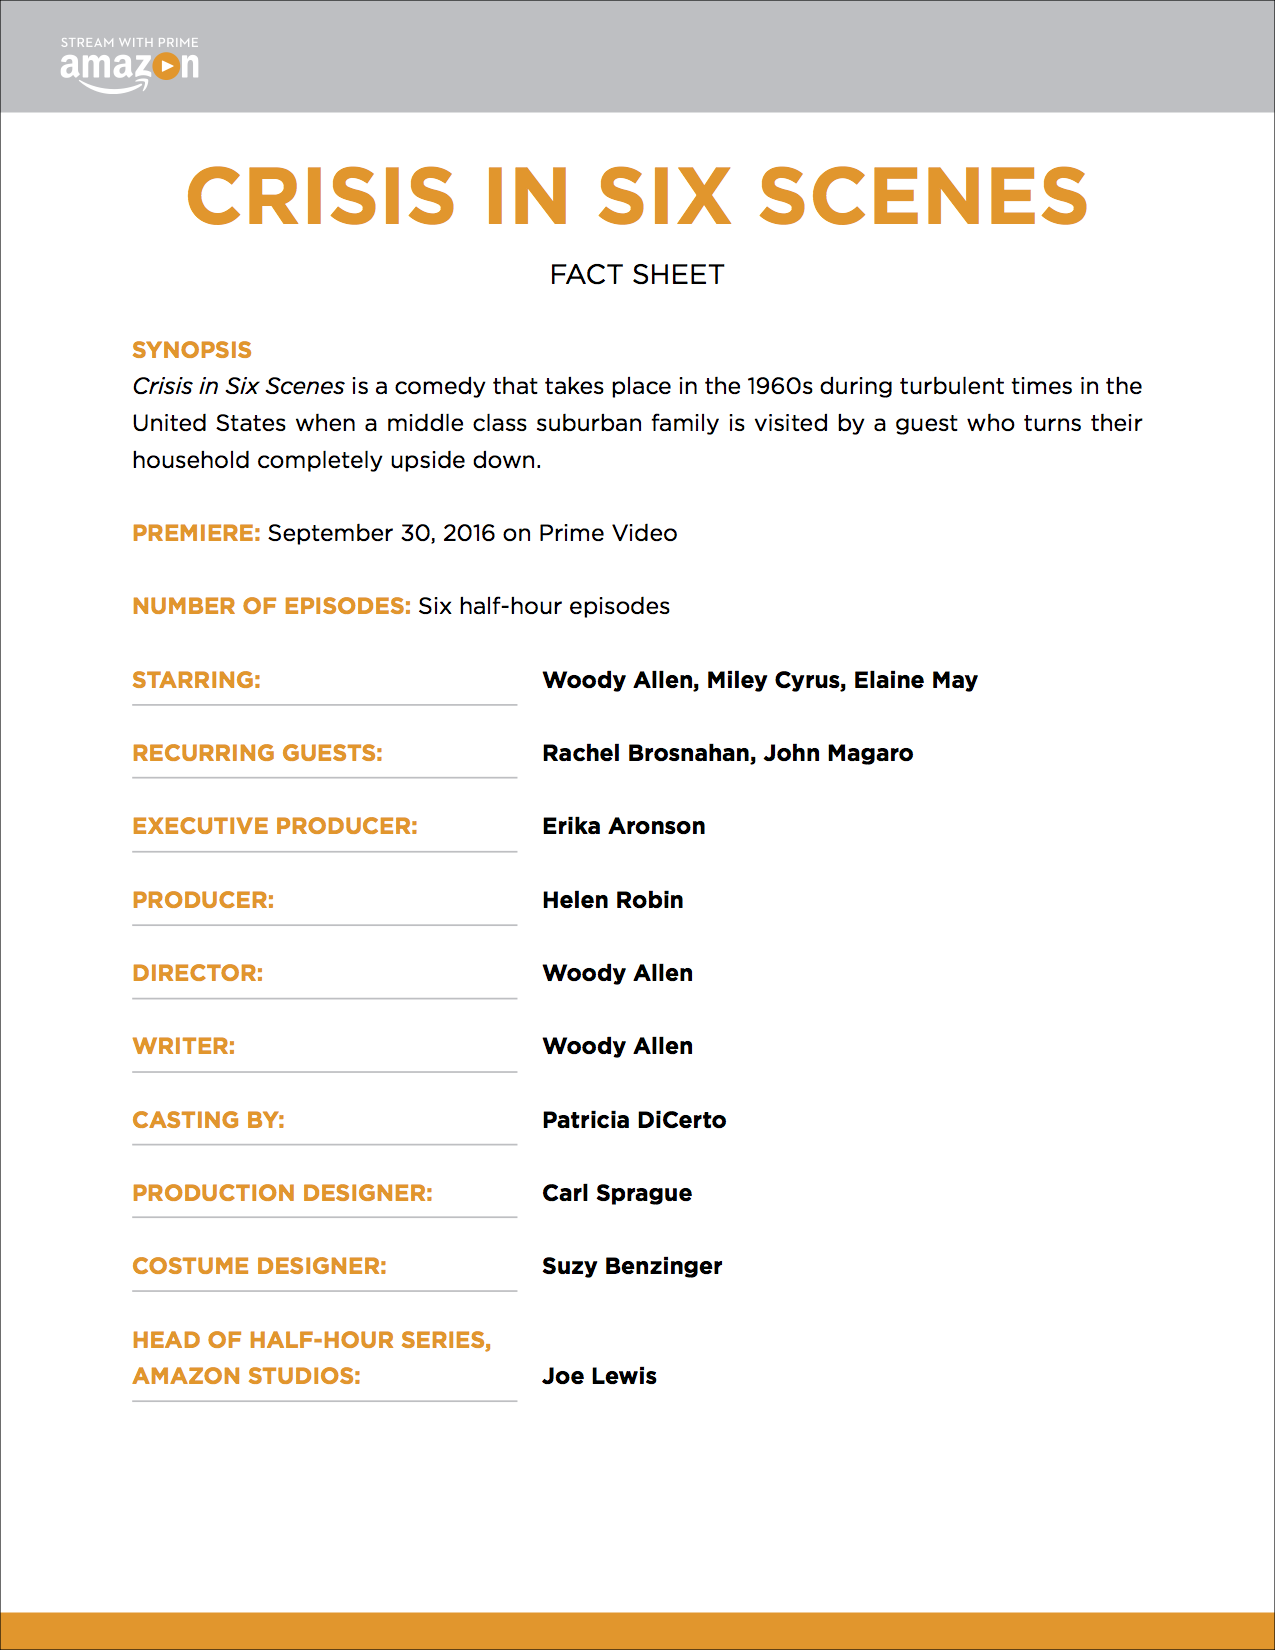 Crisis in Six Scenes Fact Sheet